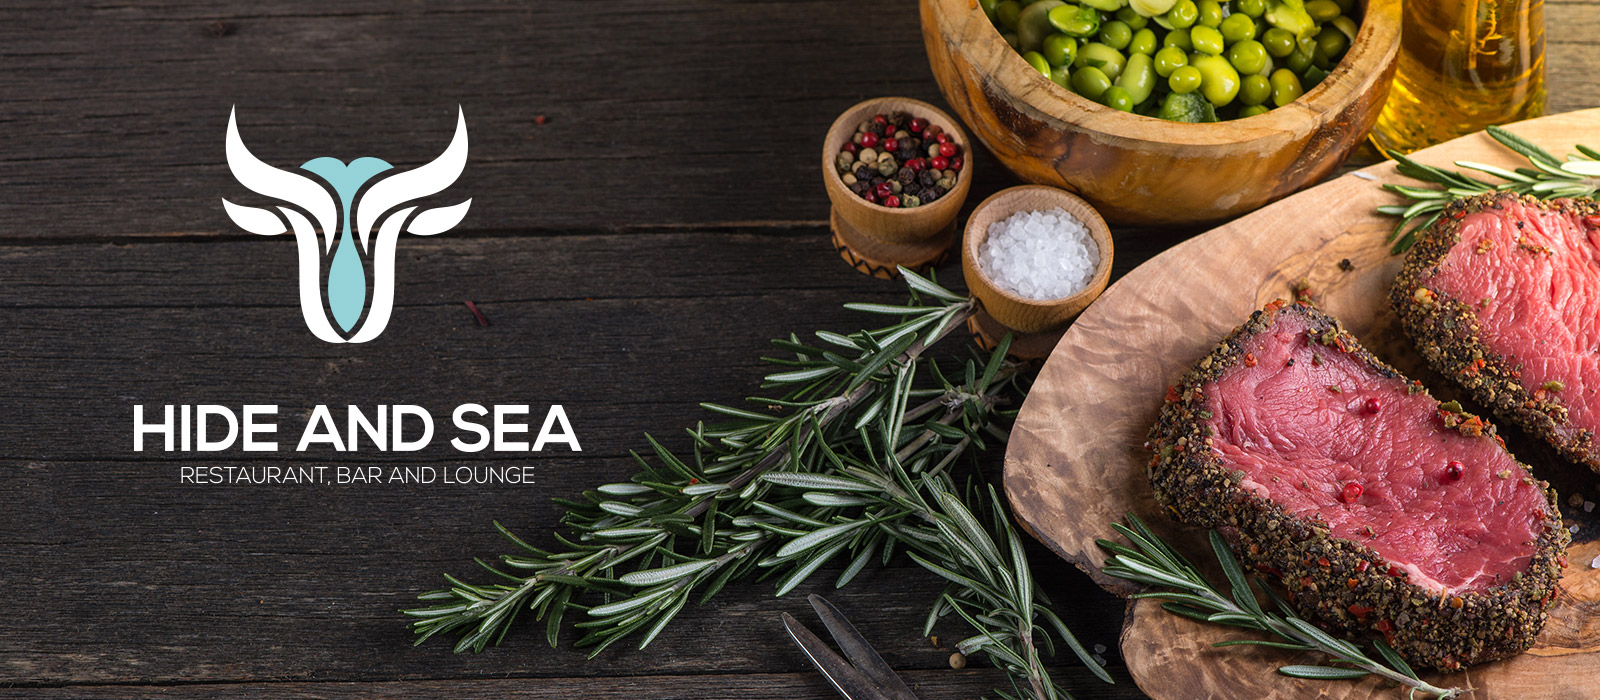 Branding for HIDE AND SEA